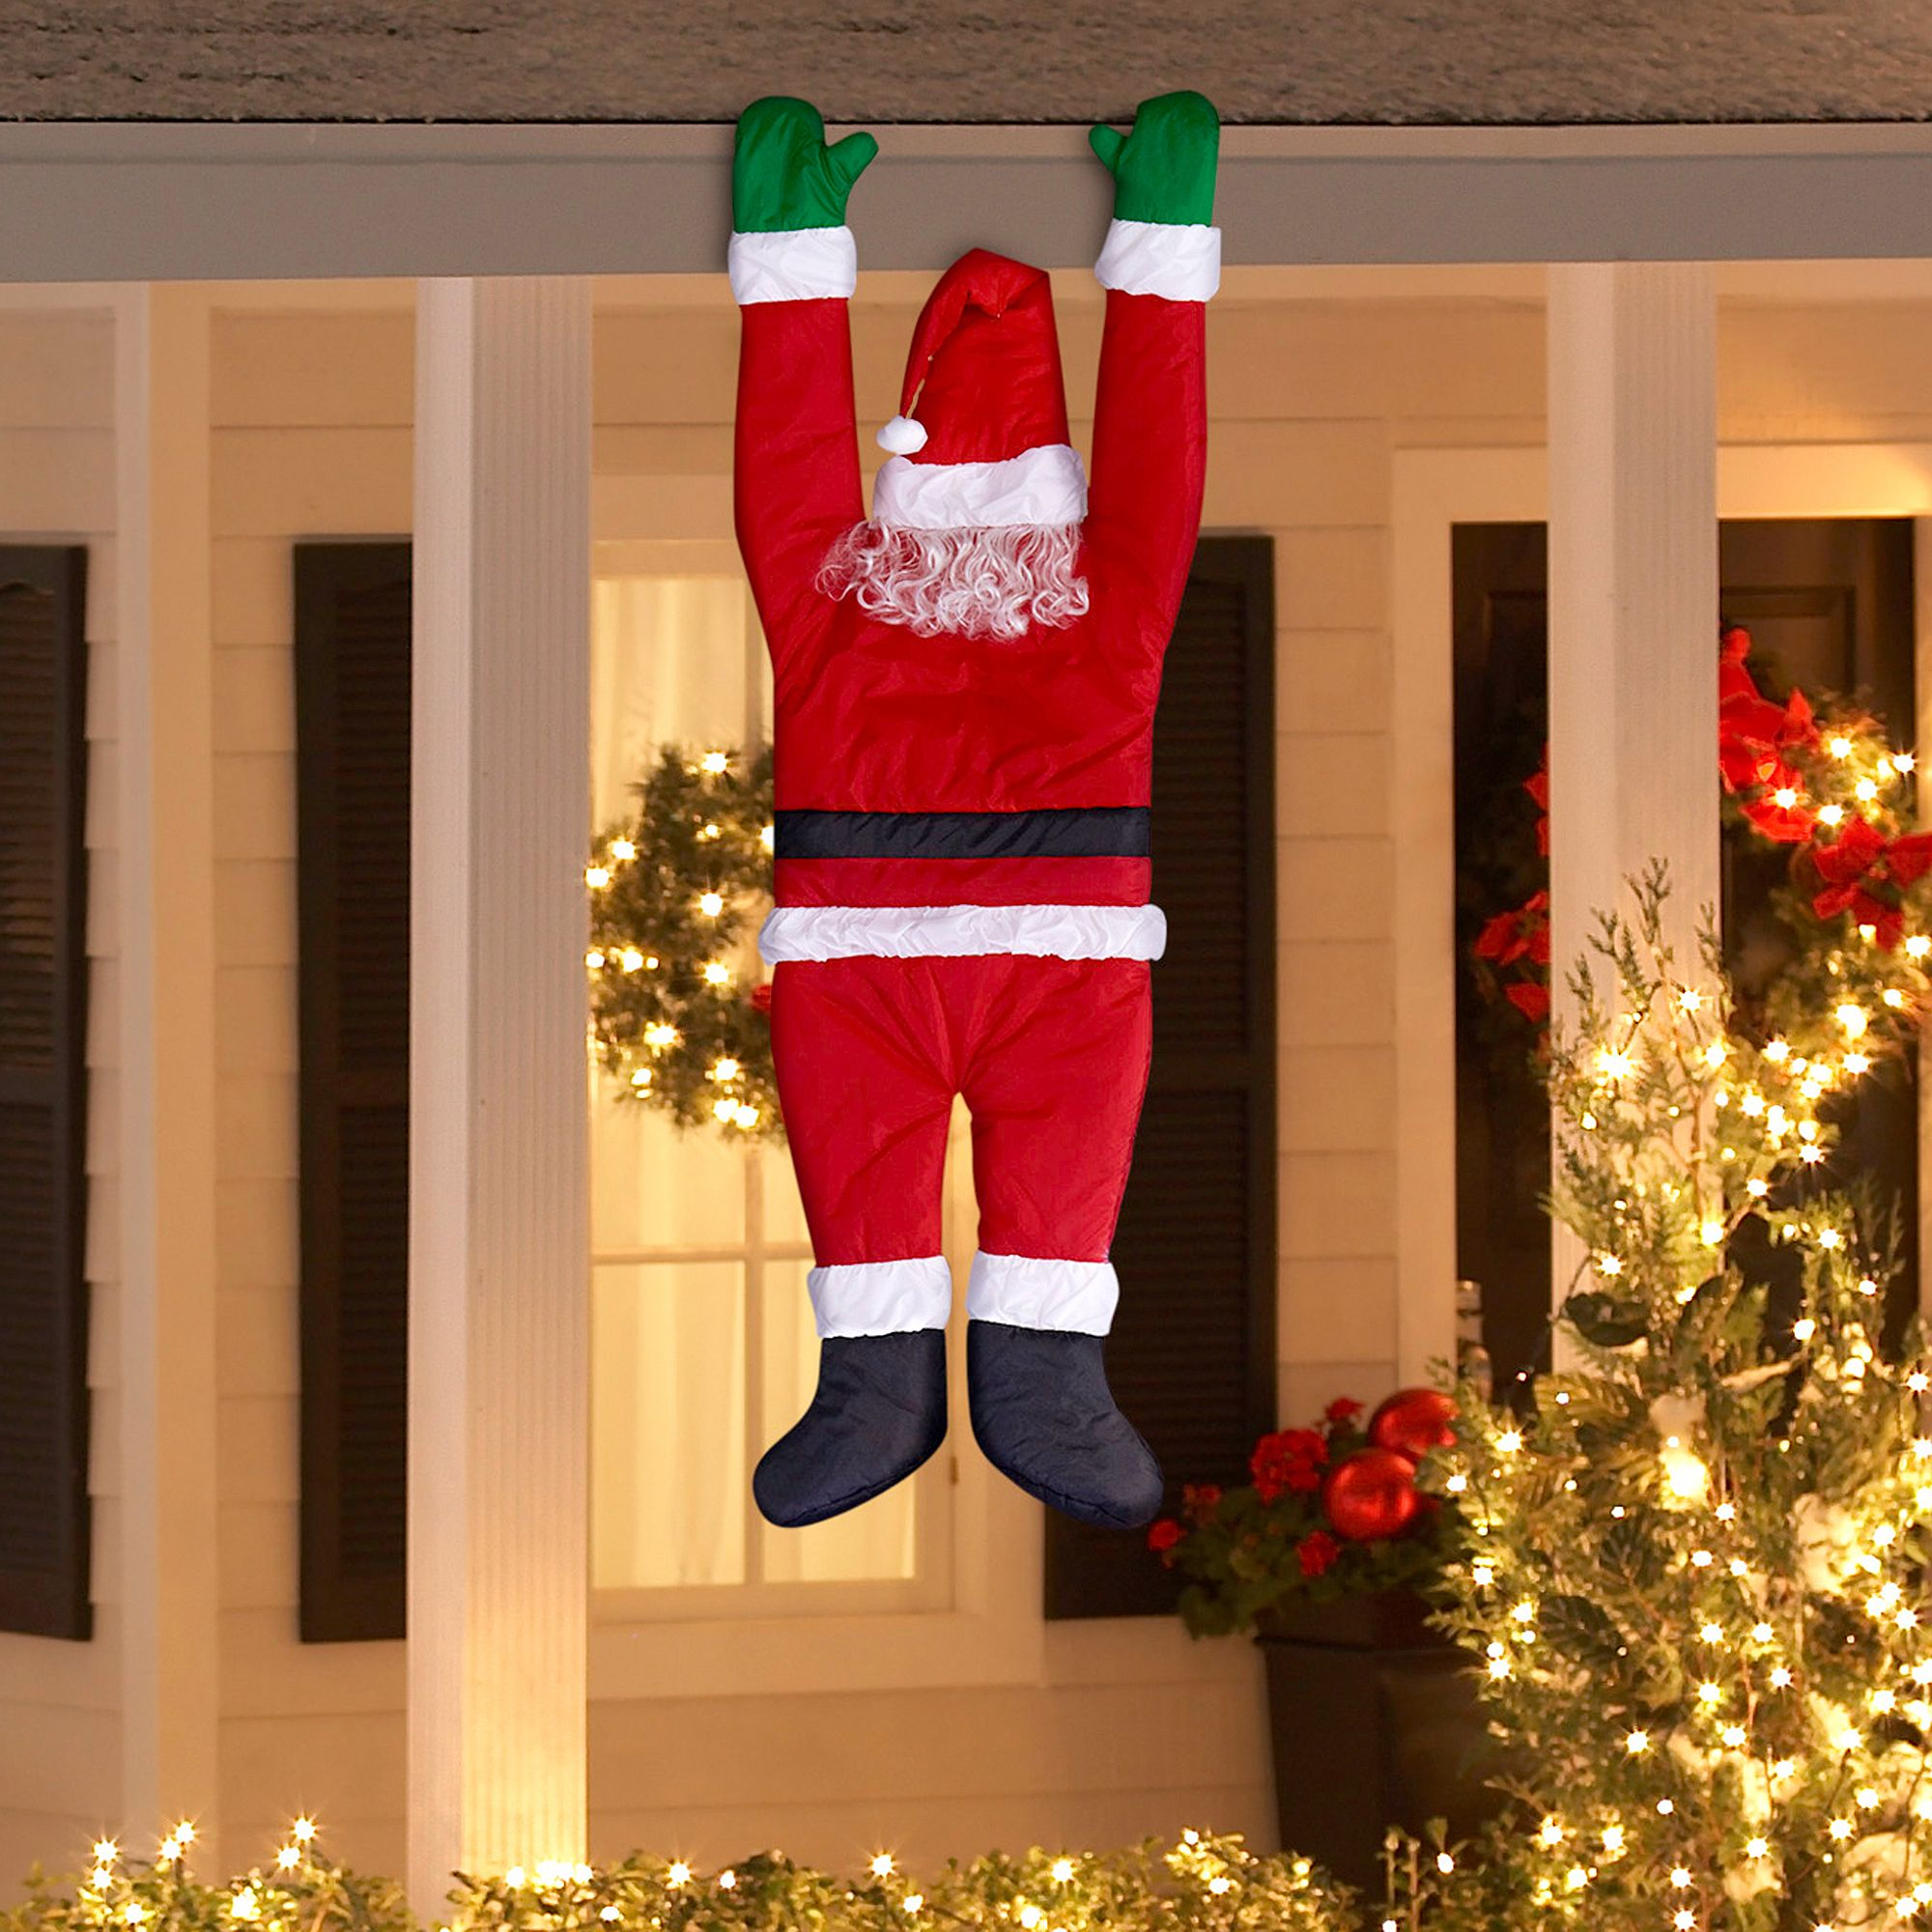 Roof Gutter Hanging Santa Christmas Decorations Indoor Outdoor Holiday Yard New